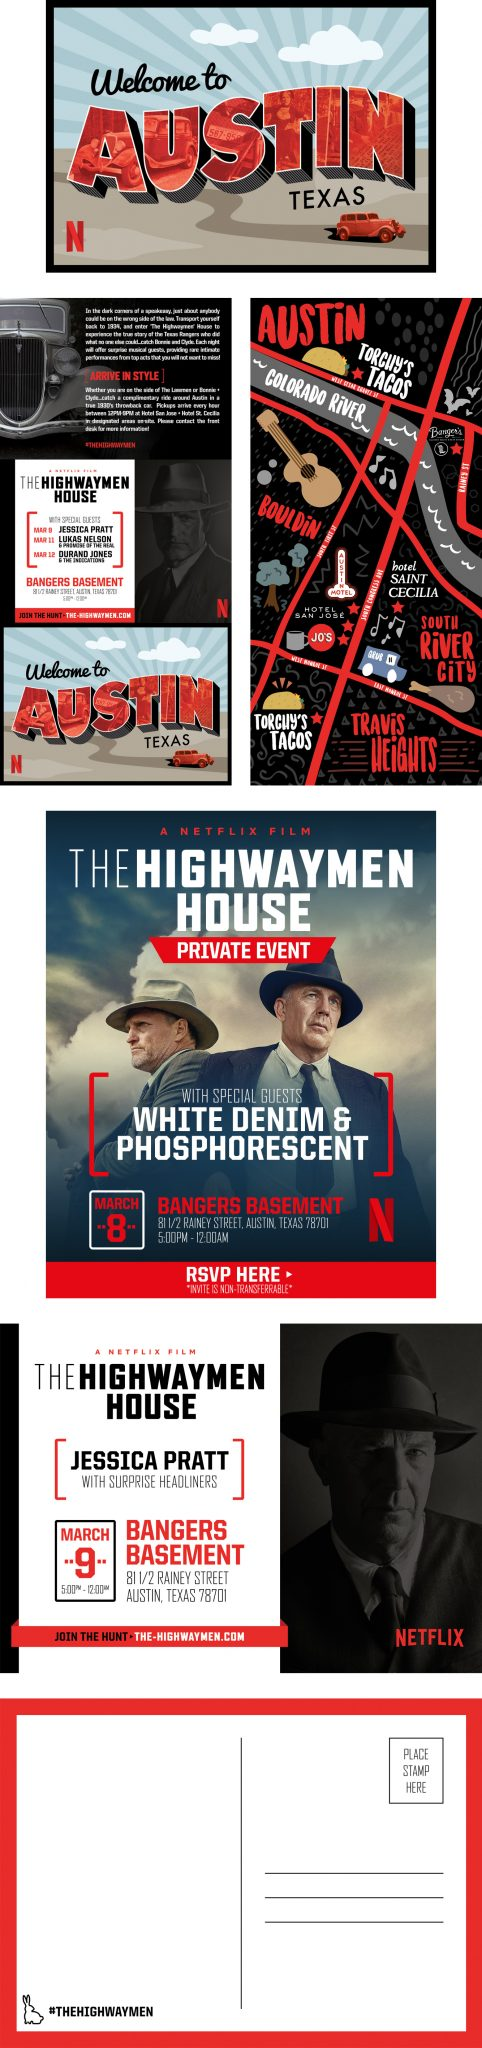 SXSW Event Graphic Design Assets, created for Netflix's The Highwaymen